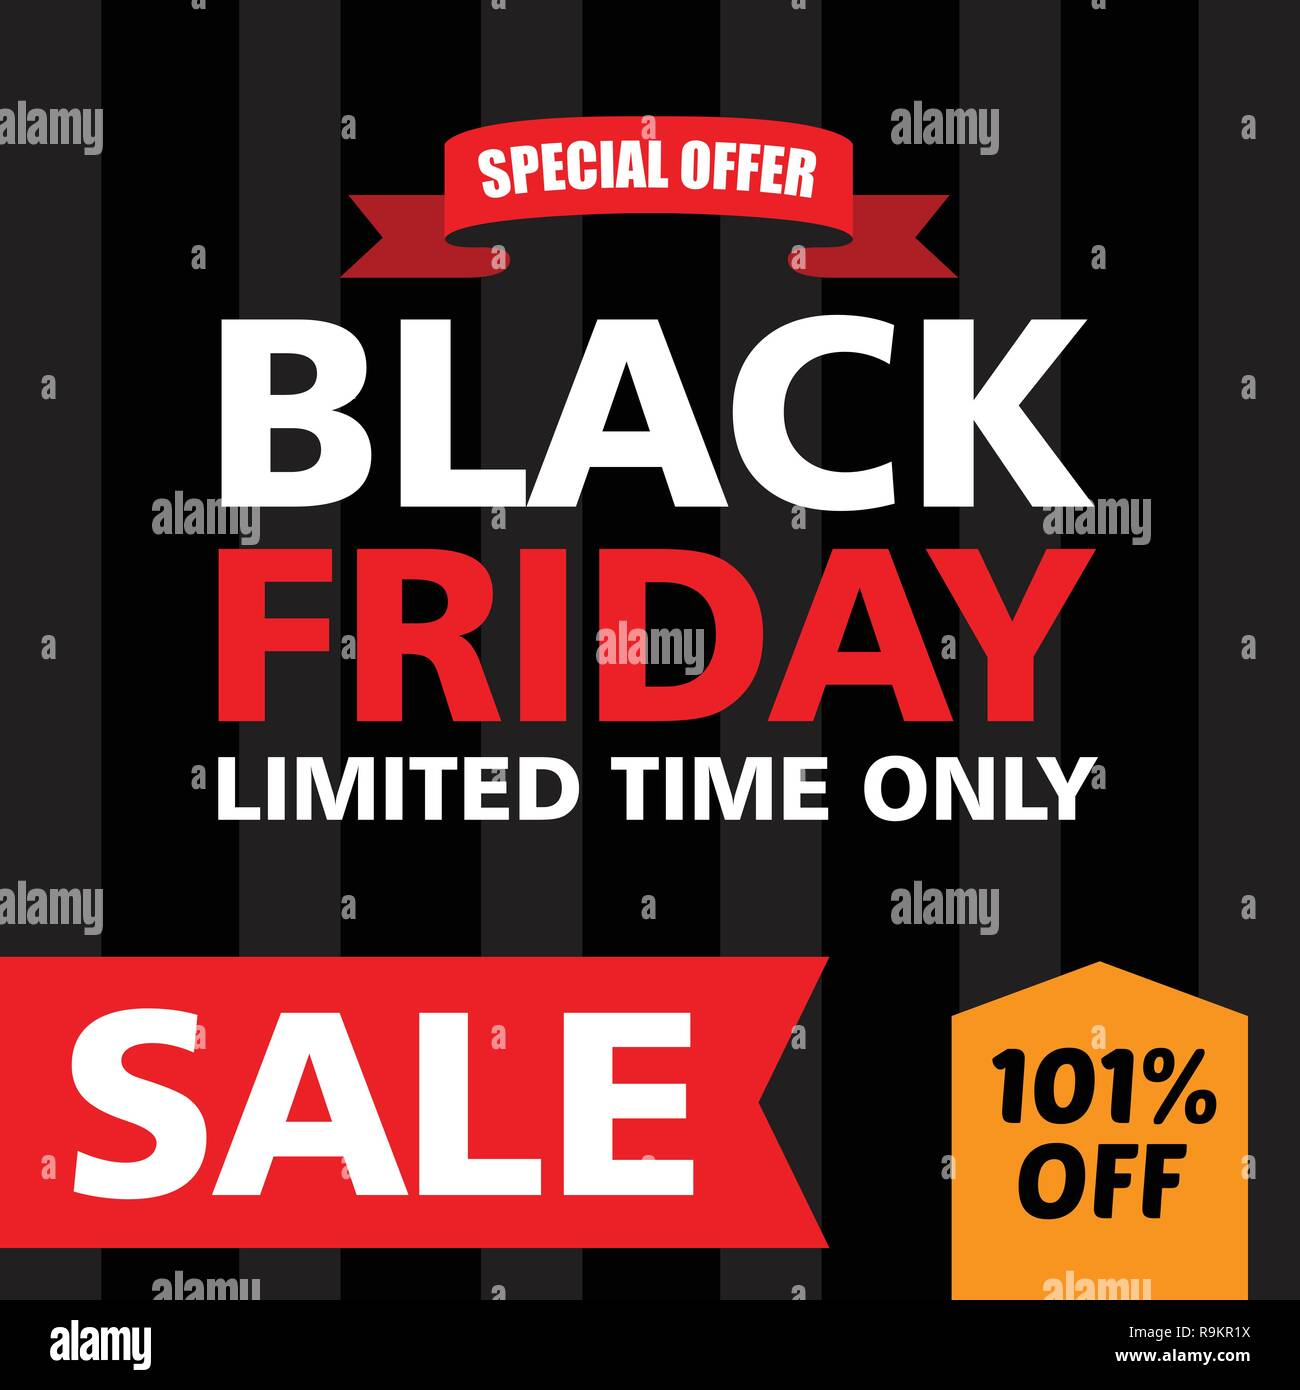 Black Friday Banner Ad For Your Business Event Good For Print Stock Vector Image Art Alamy